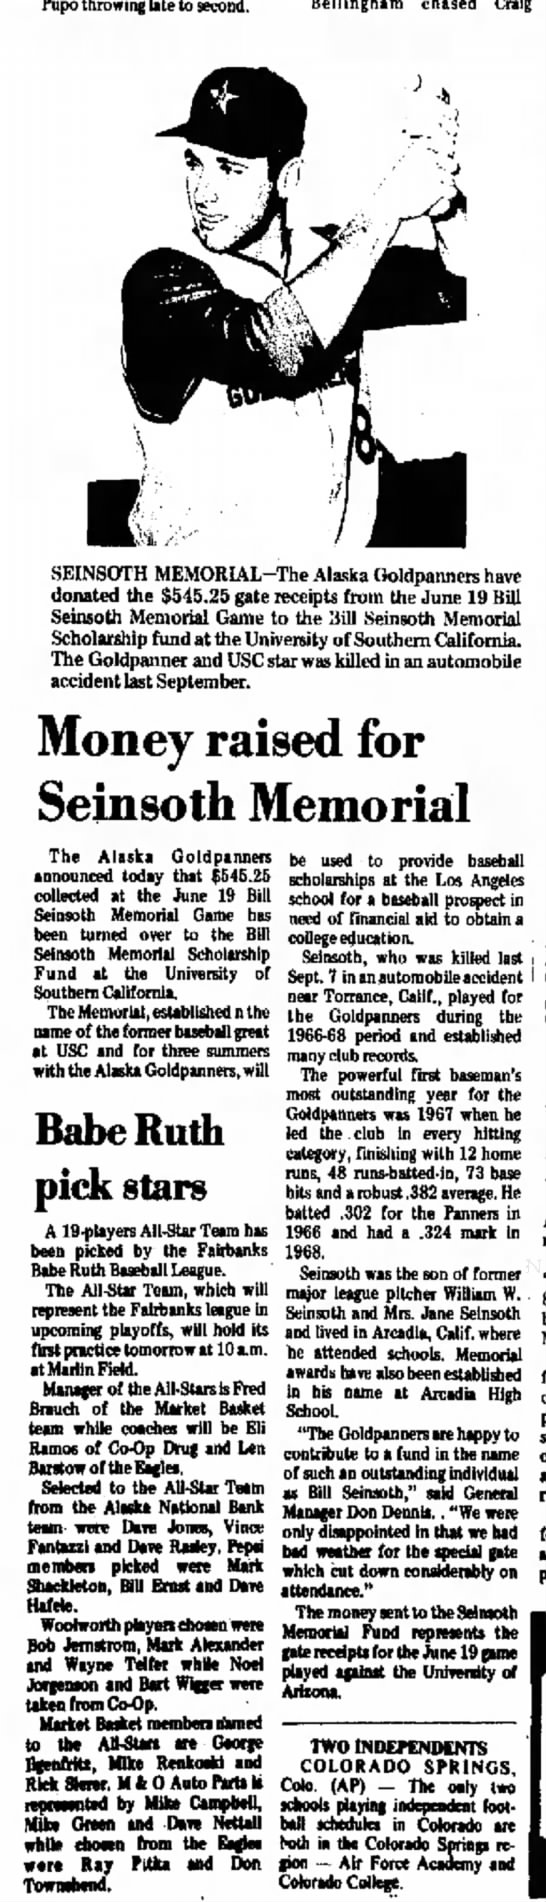 Fairbanks Daily News-Miner, 11 Jul 1970 - William Robert Seinsoth Memorial - Pupo throwing late to second. Bellingham chased...